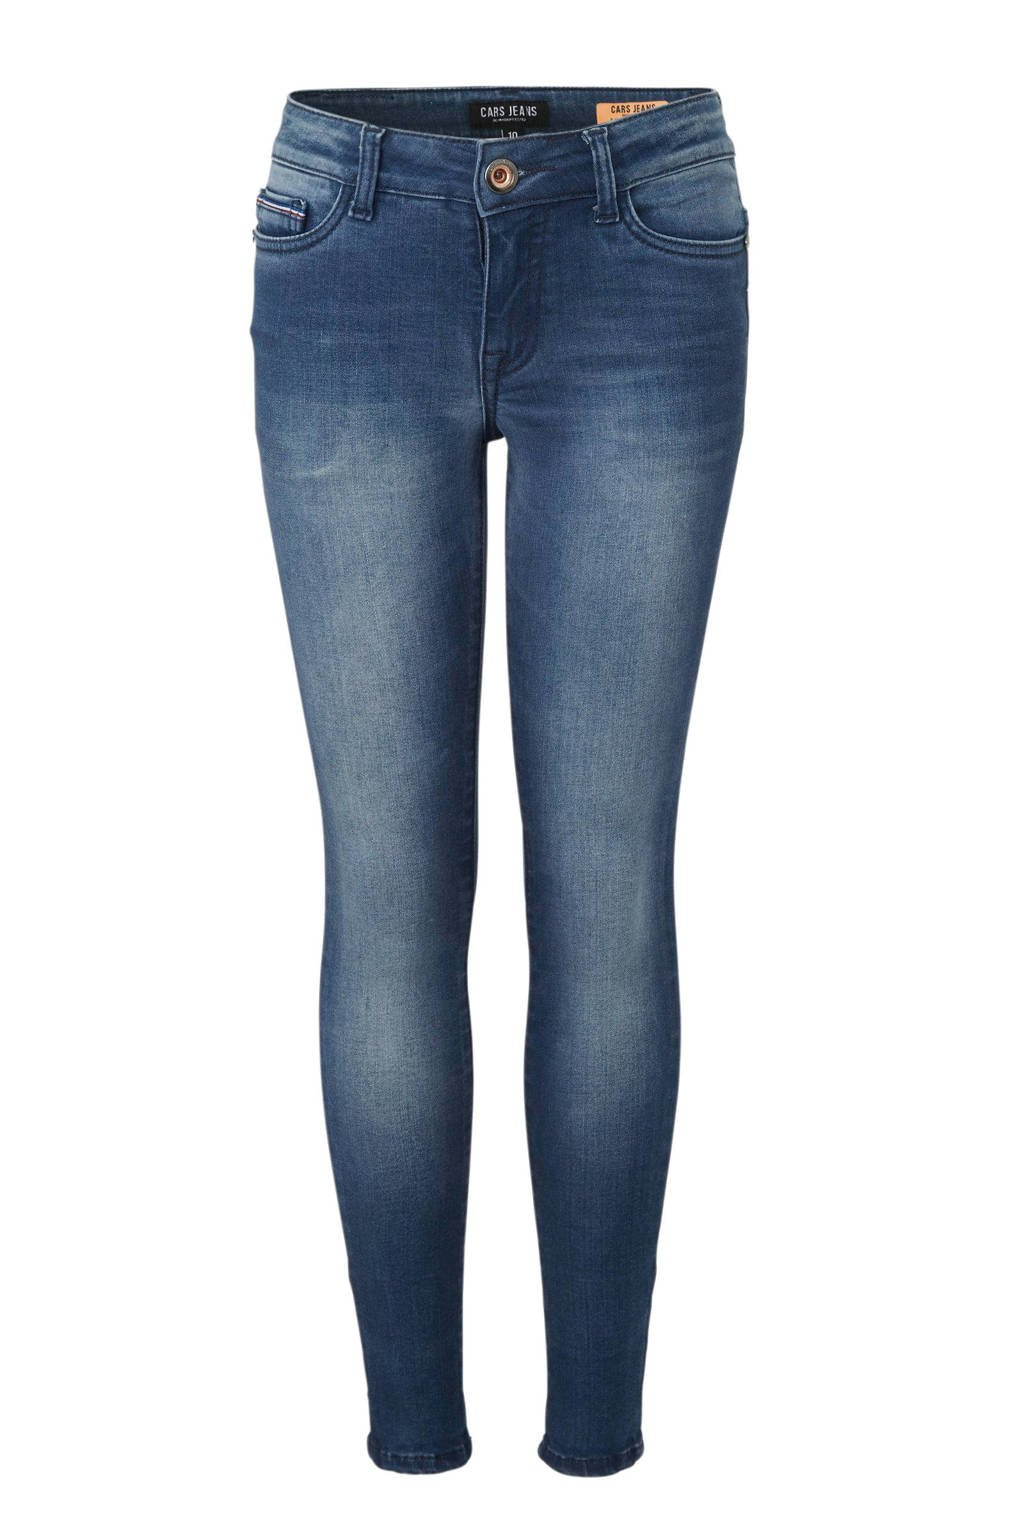 Cars jeans Diego, Donkerblauw